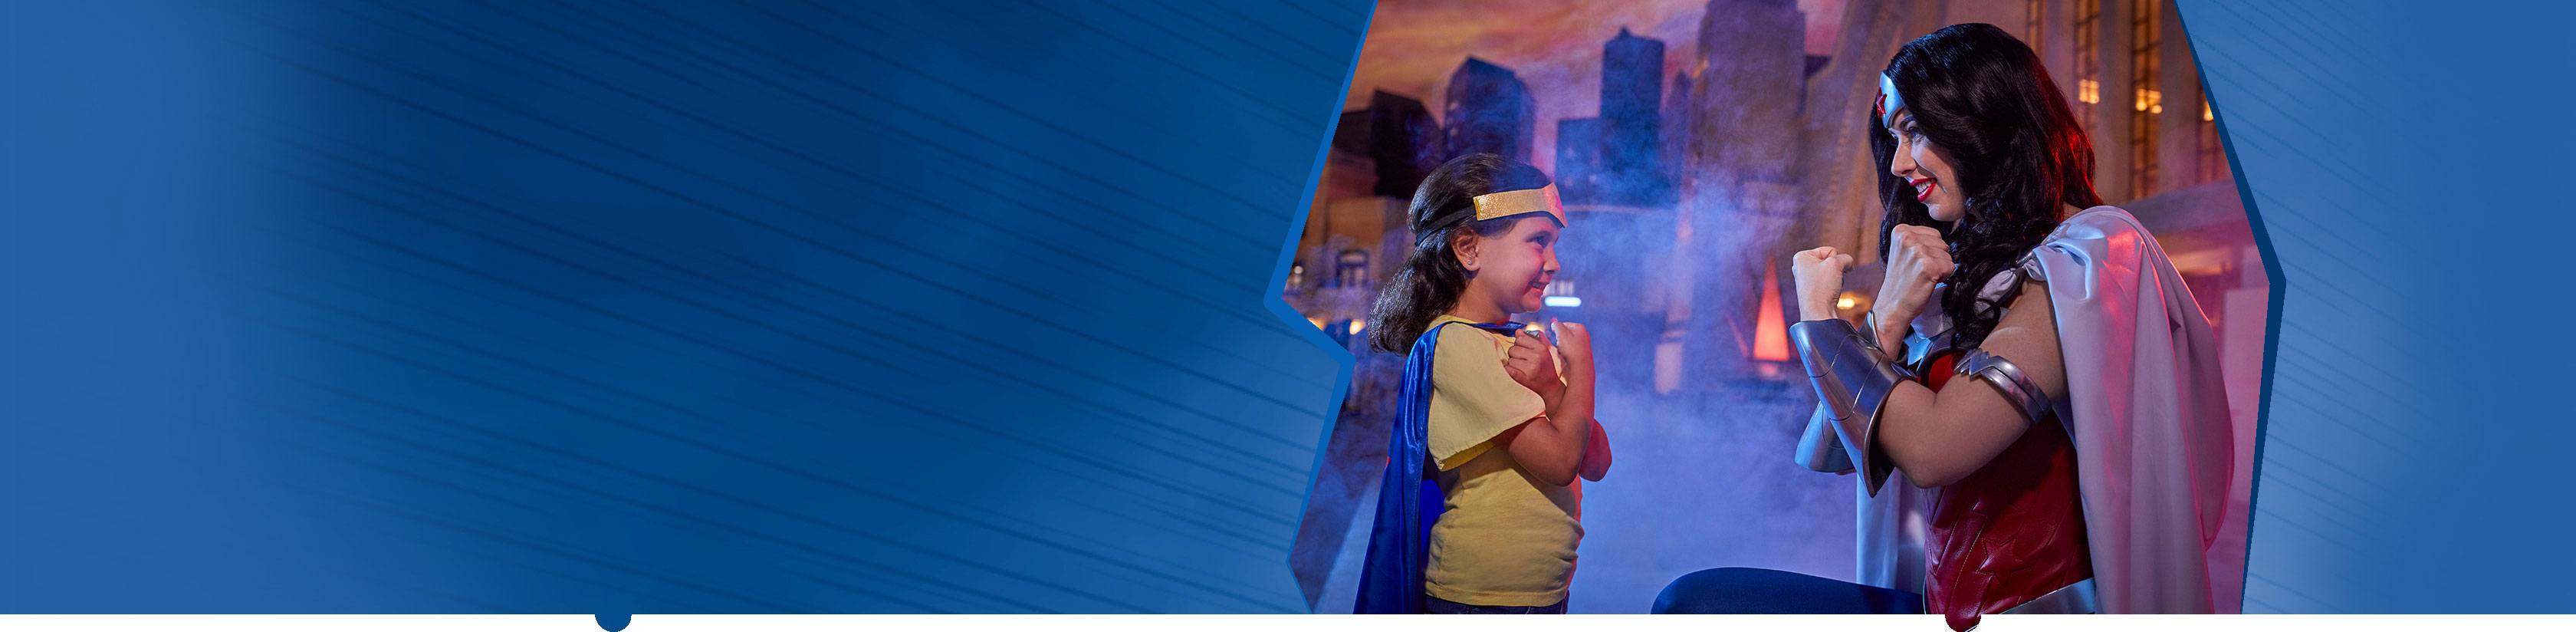 Meet Wonder Woman at Warner Bros. World Abu Dhabi